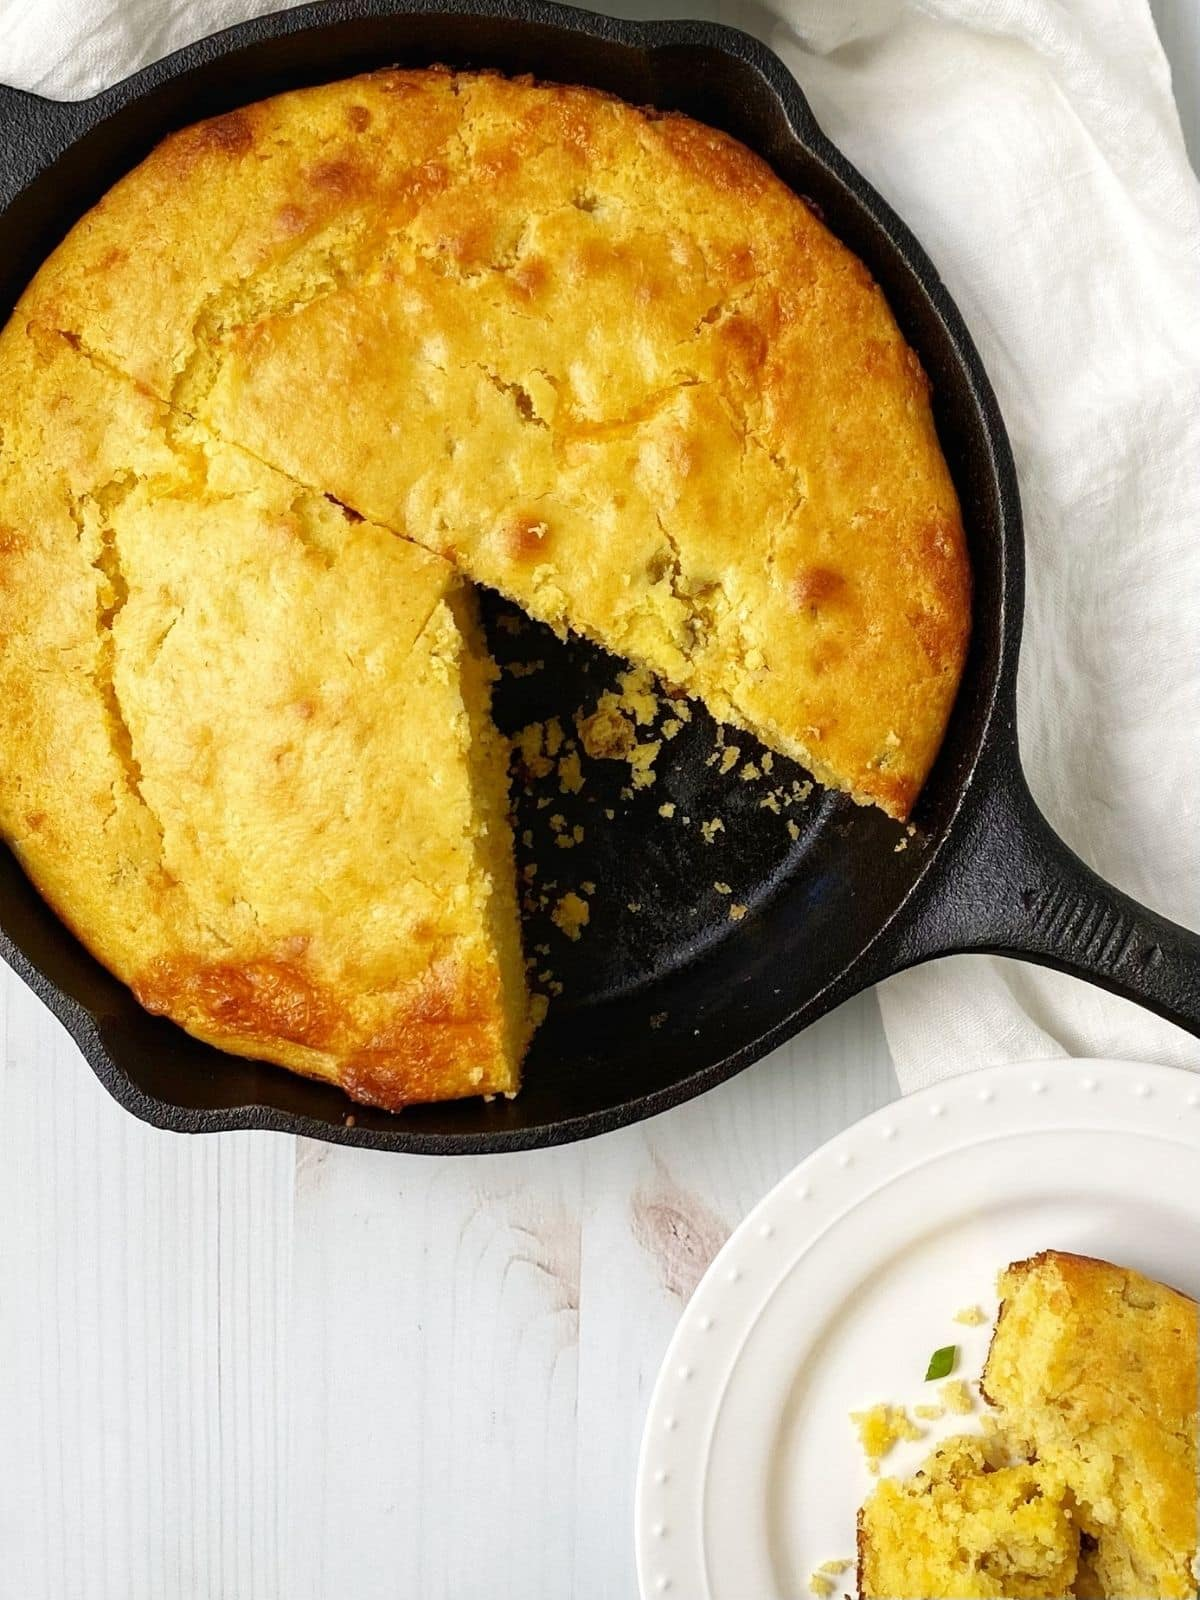 skillet of cornbread with a slice removed